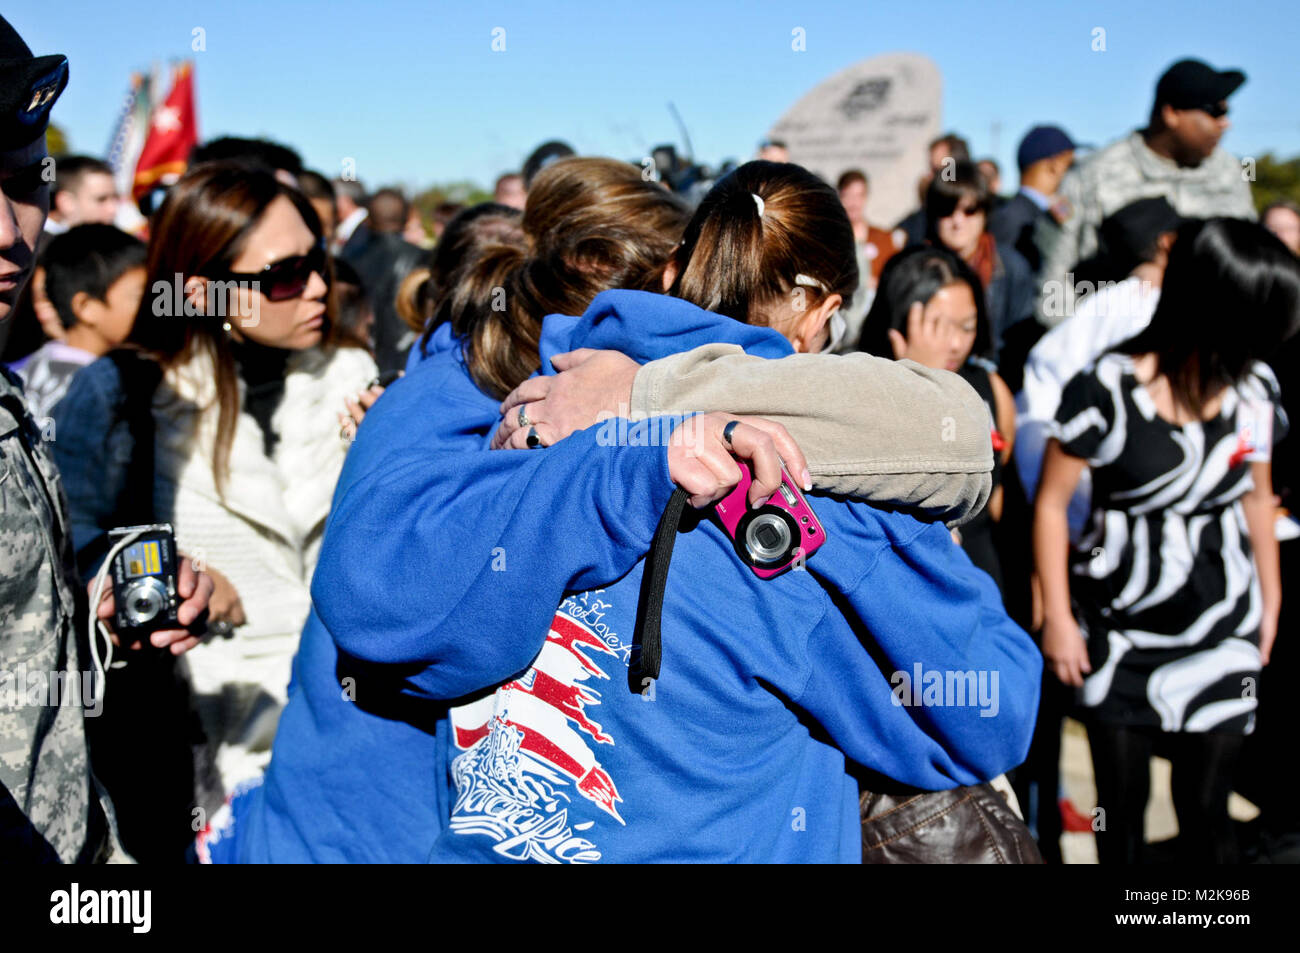 FORT HOOD, Texas -- The Kreuger family shares a tearful hug after the Fort Hood Awards Ceremony and Memorial Stone - Stock Image